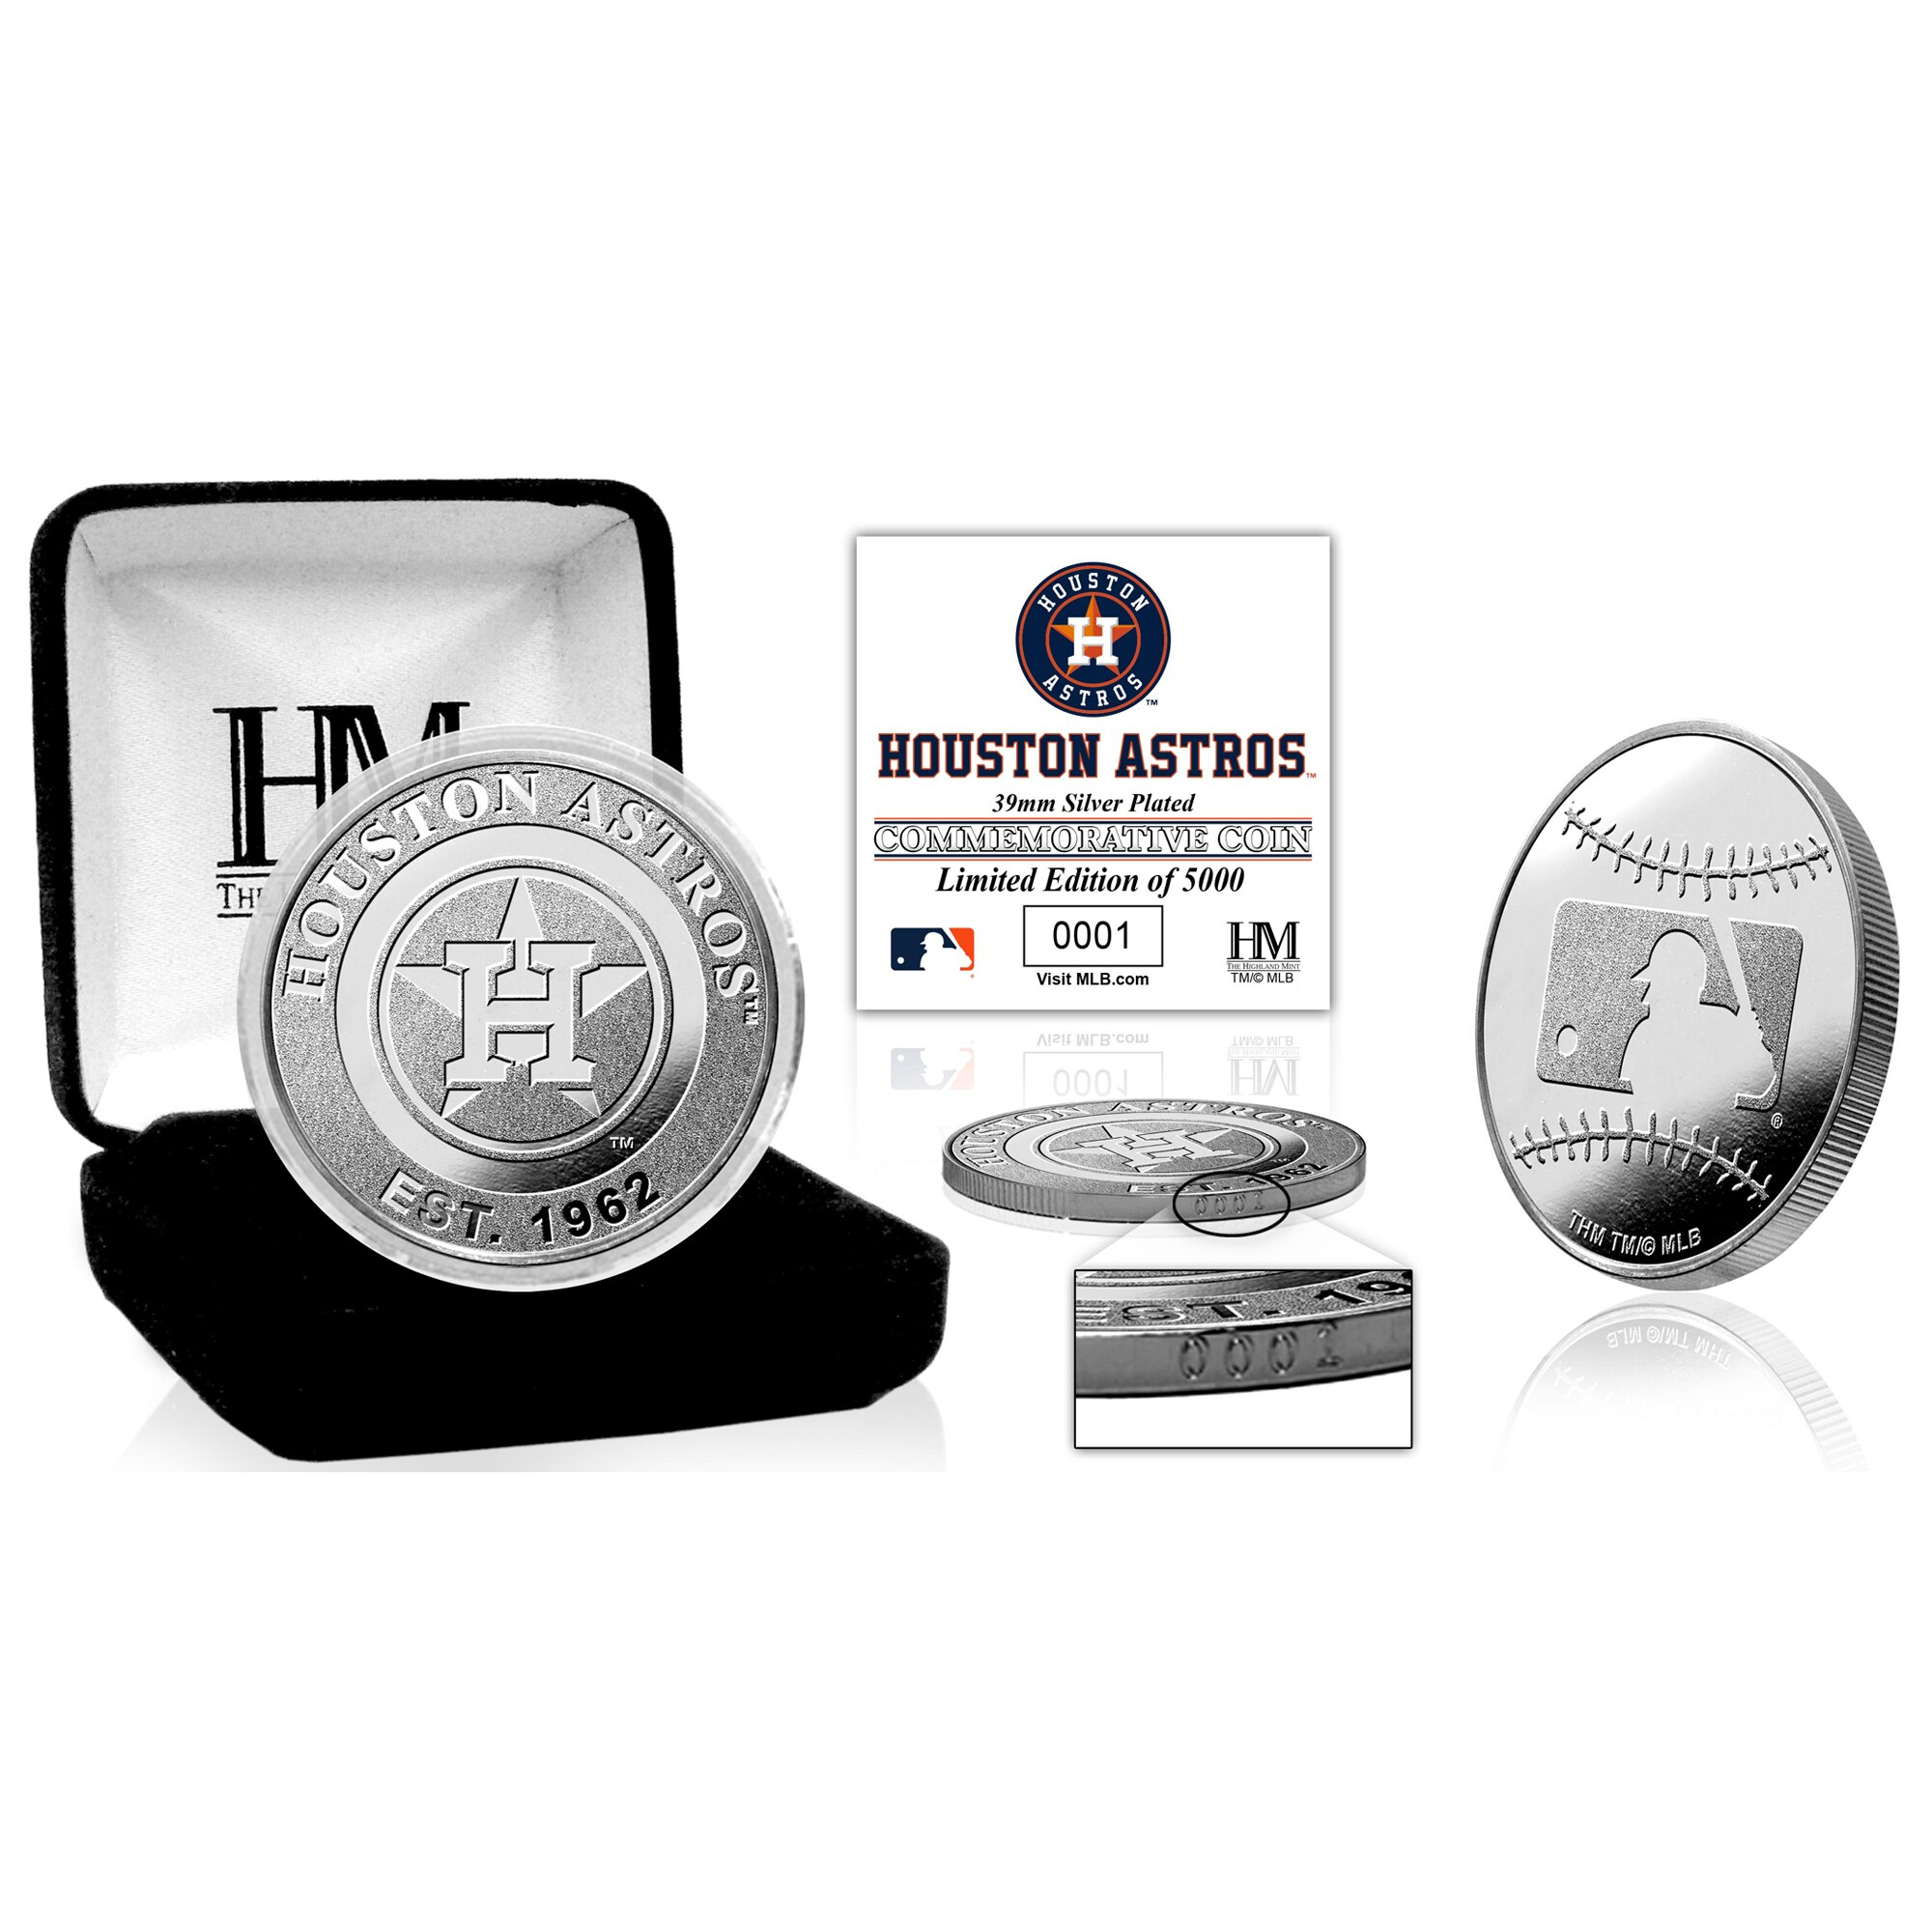 Houston Astros Highland Mint Silver Mint Coin